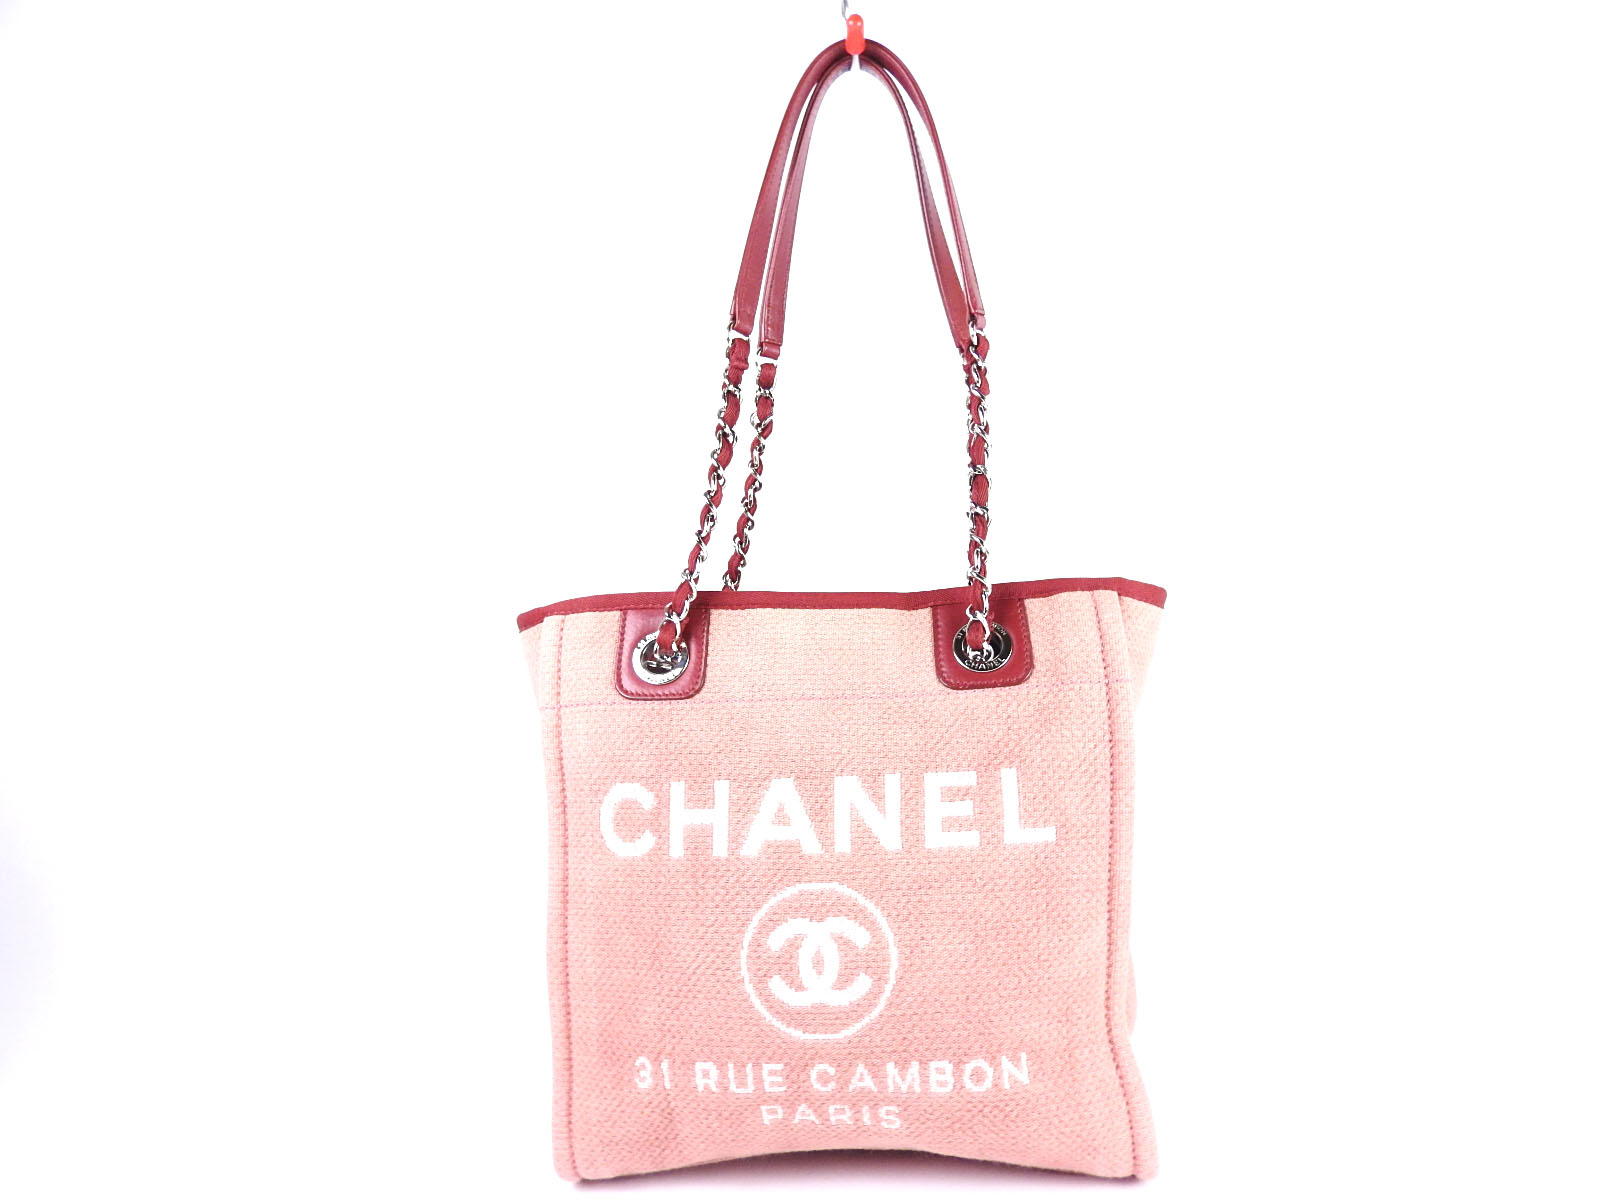 1cba0118bb2b5d Auth CHANEL Deauville PM CC Chain Shoulder Tote Bag Canvas Red Pink A66939  A4718 | eBay. Chanel Canvas Tote Shopping Bag 8099 ...